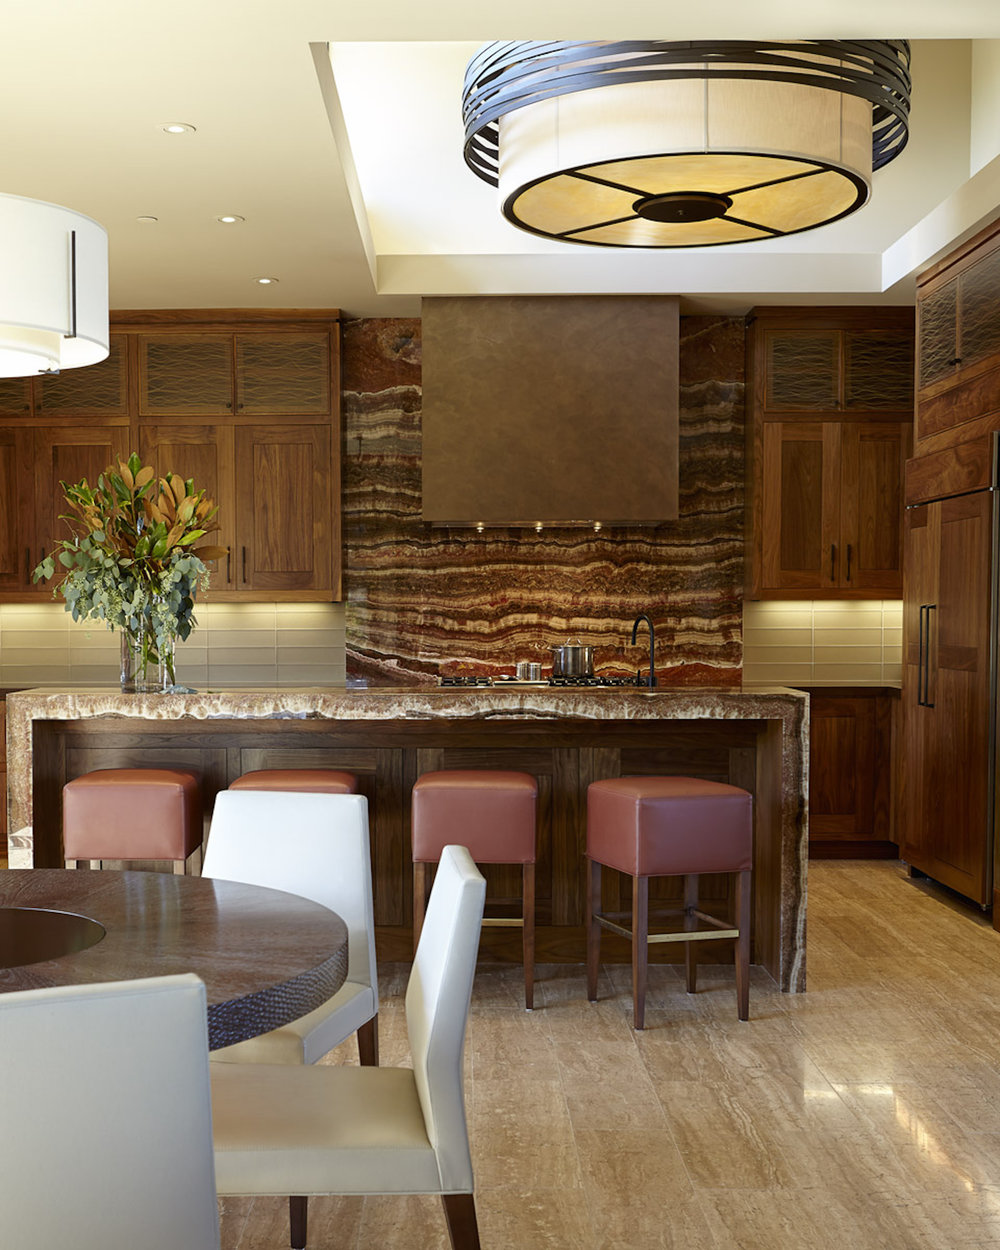 Six feet in diameter, a CHA2016 drum chandelier from the Hammerton Fusion collection makes a big design statement in this contemporary kitchen.